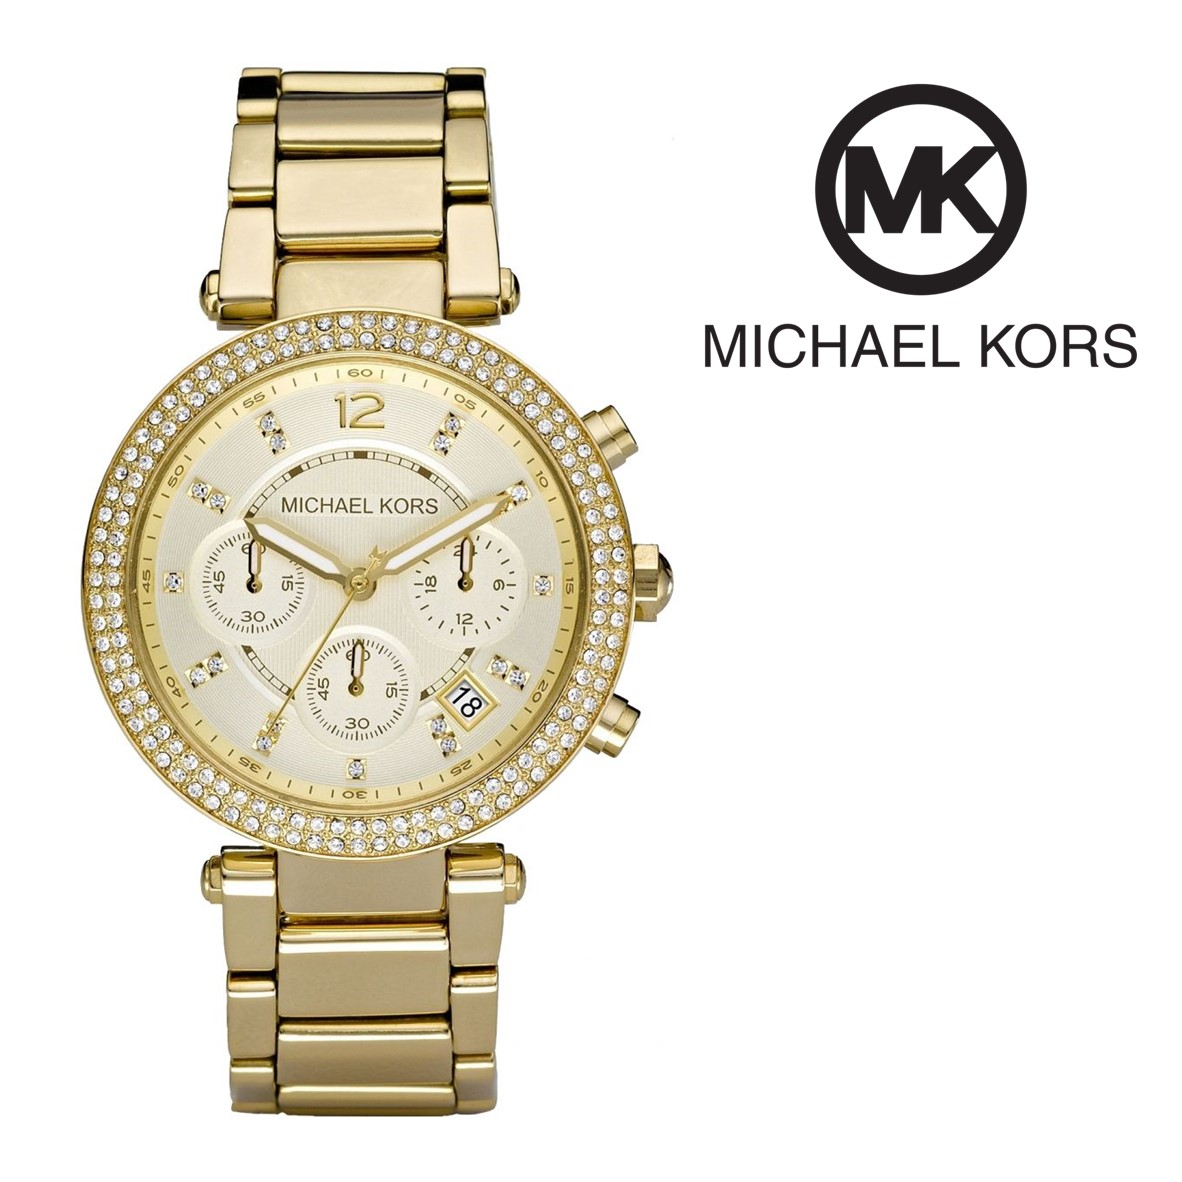 Relógio Michael Kors® Crystal Chronograph Champagne   5 ATM - You ... c4554e7980